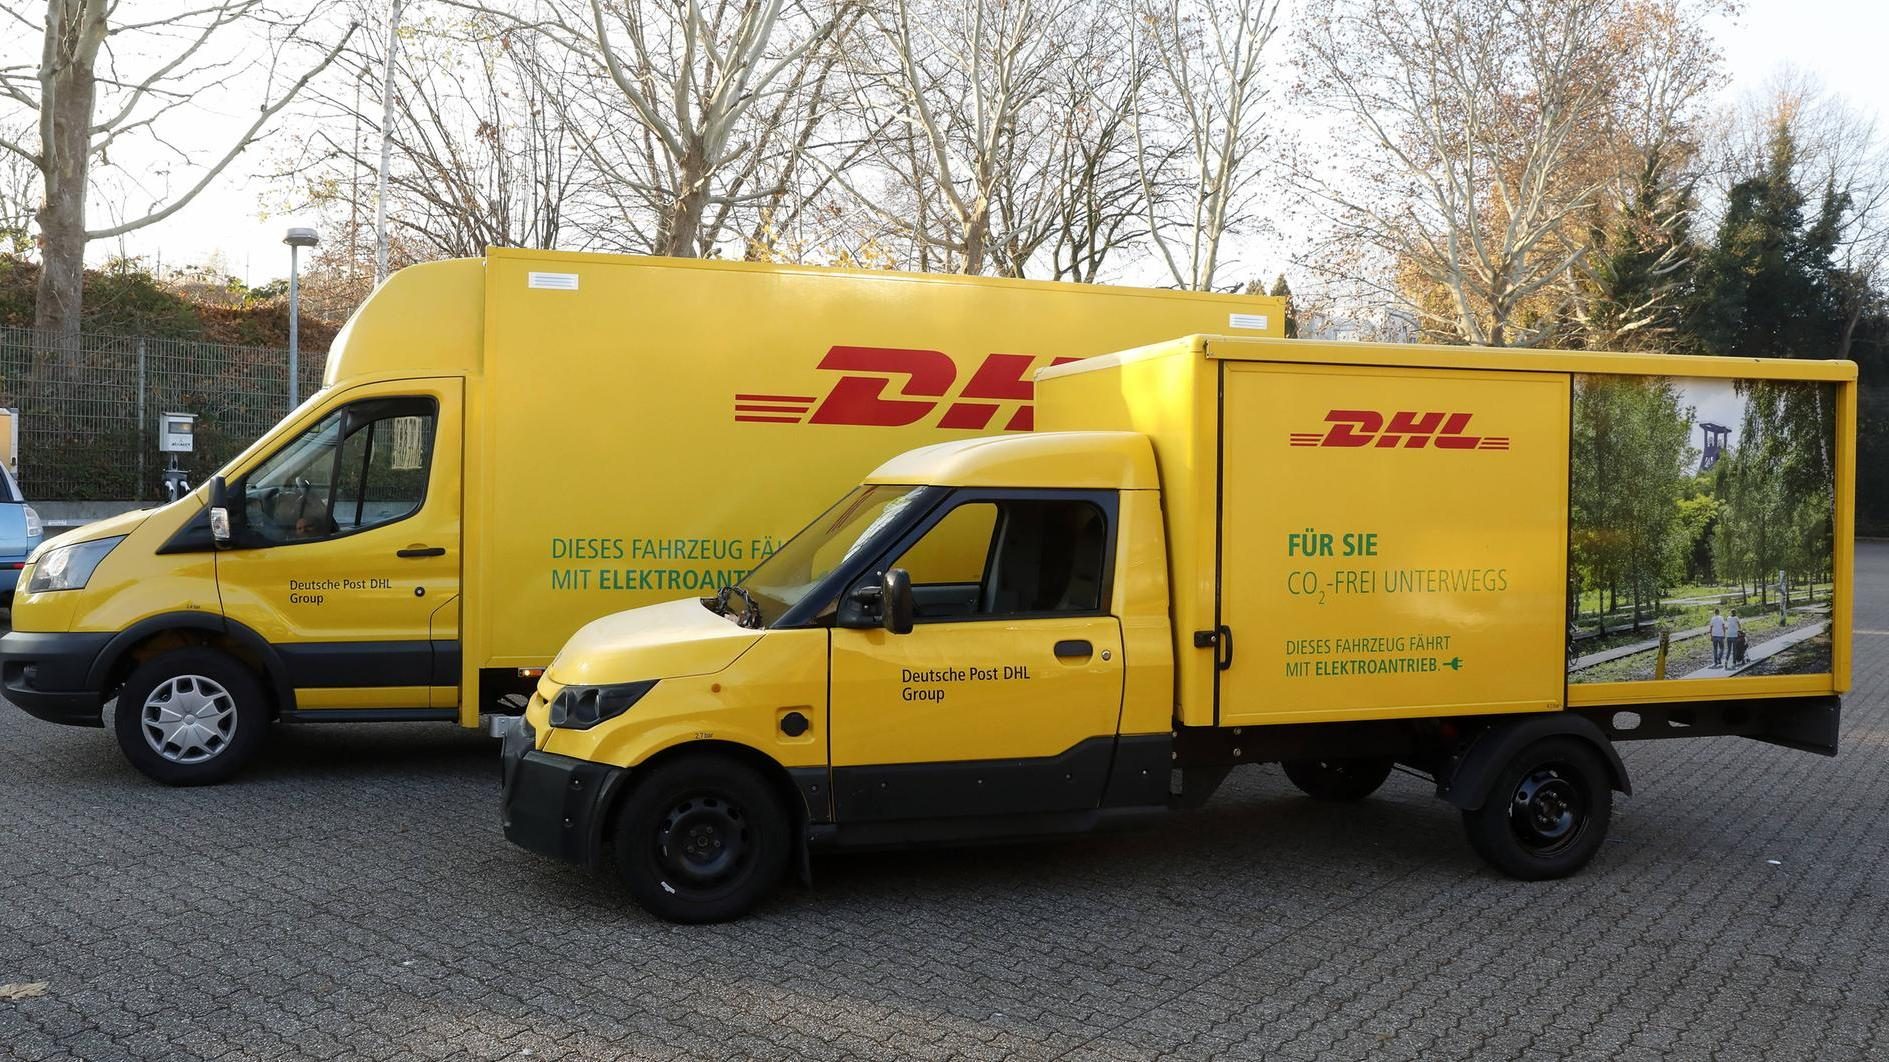 Deutsche Post Lotterie